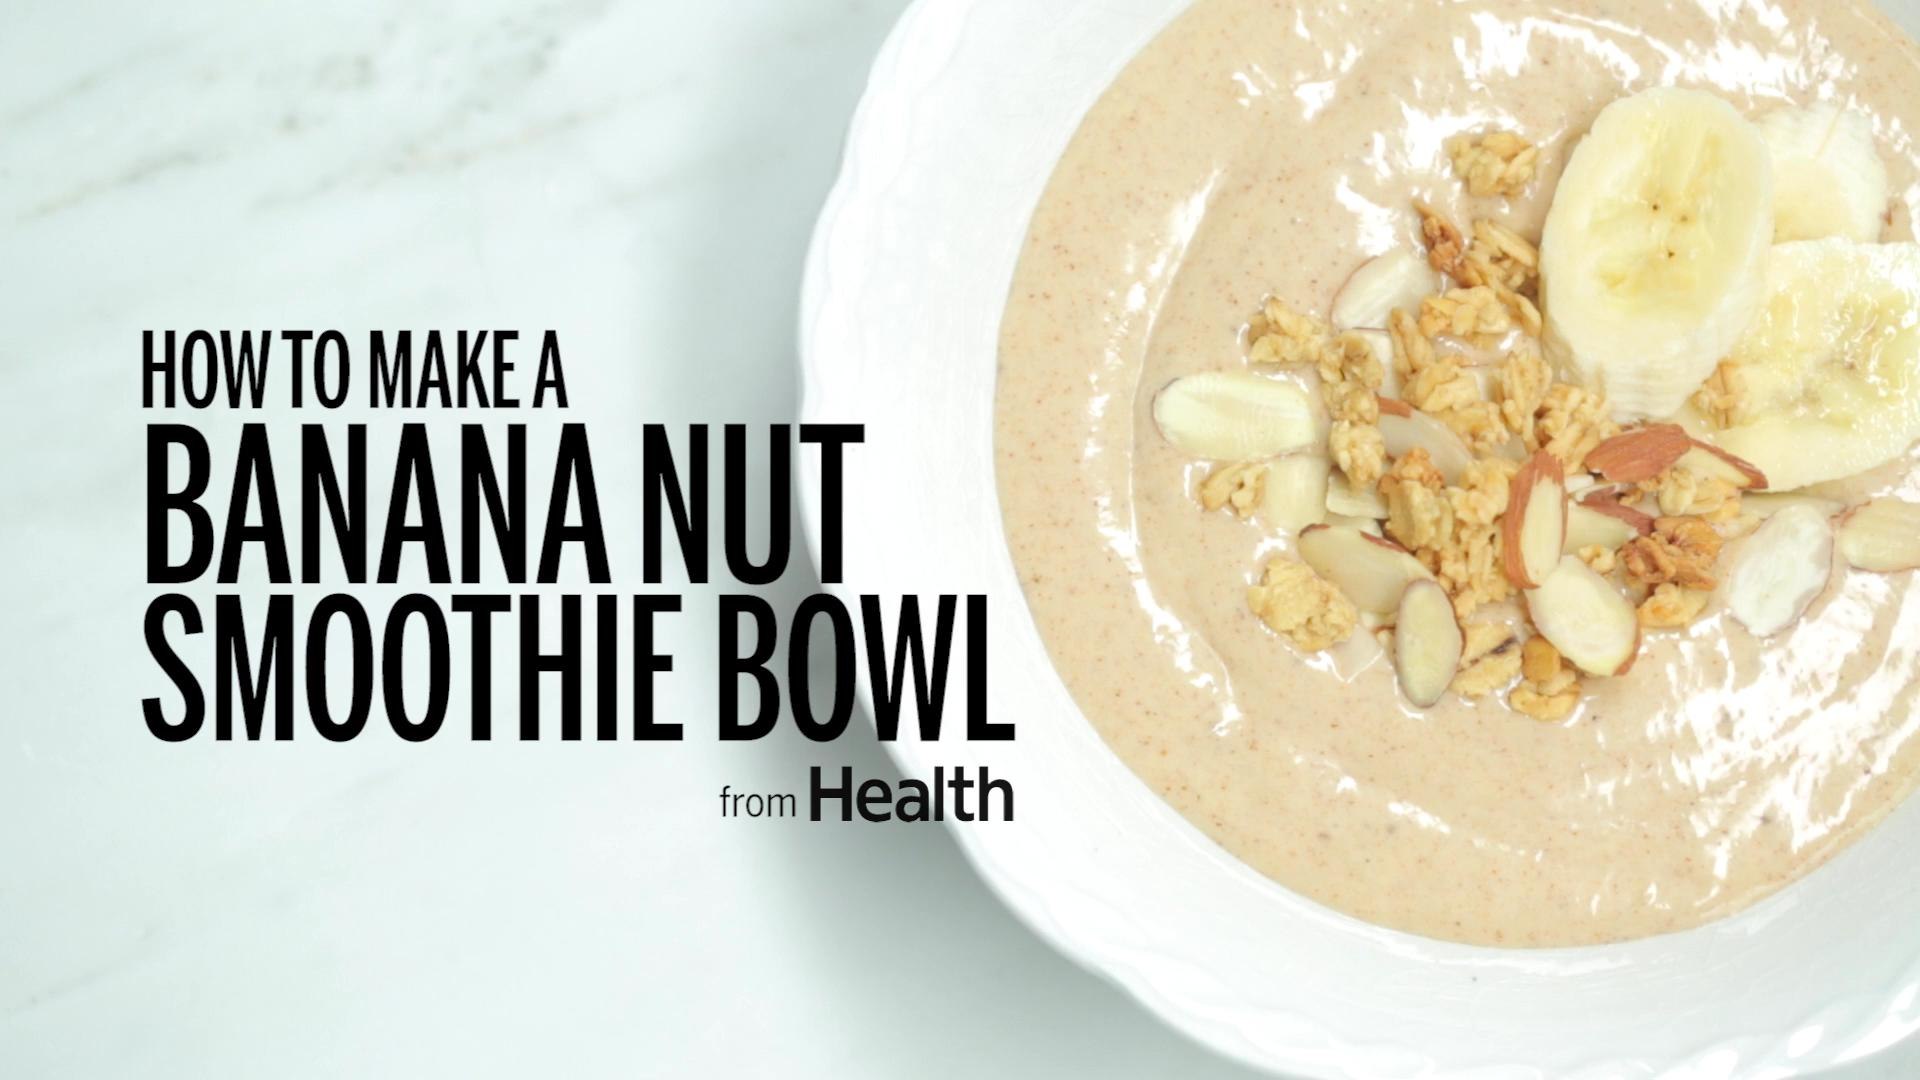 Banana-Nut Smoothie Bowl